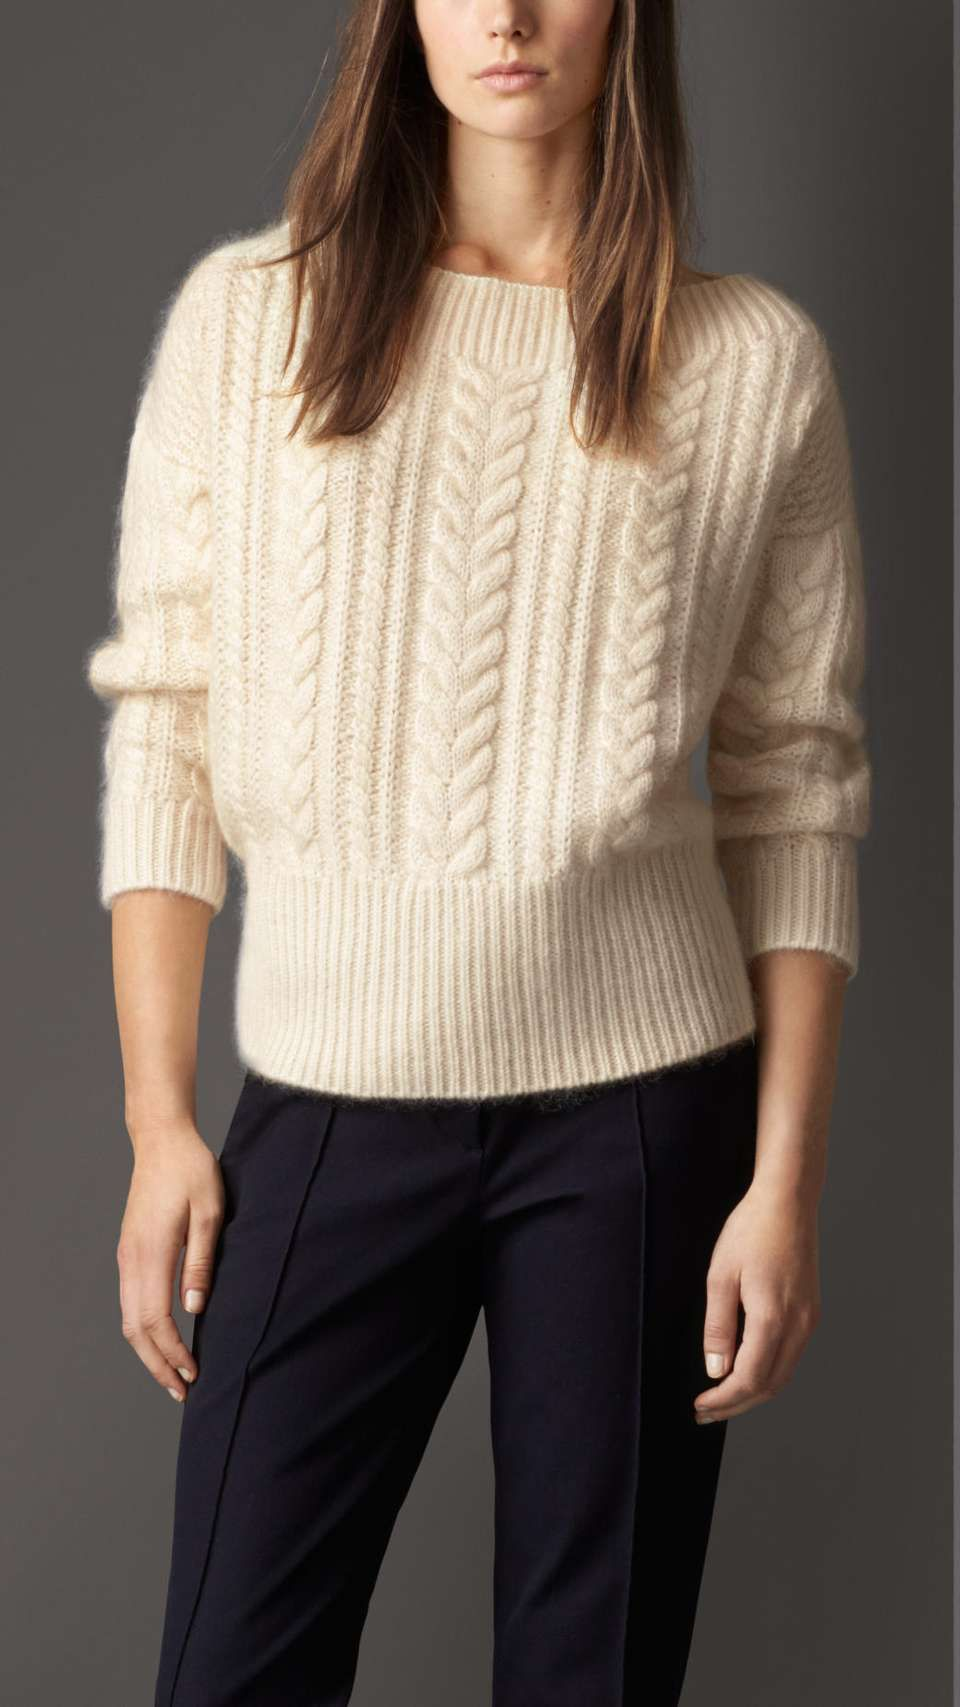 cozy-knitwear: Cable Knit Wool Mohair Blend Sweater | свитер ...